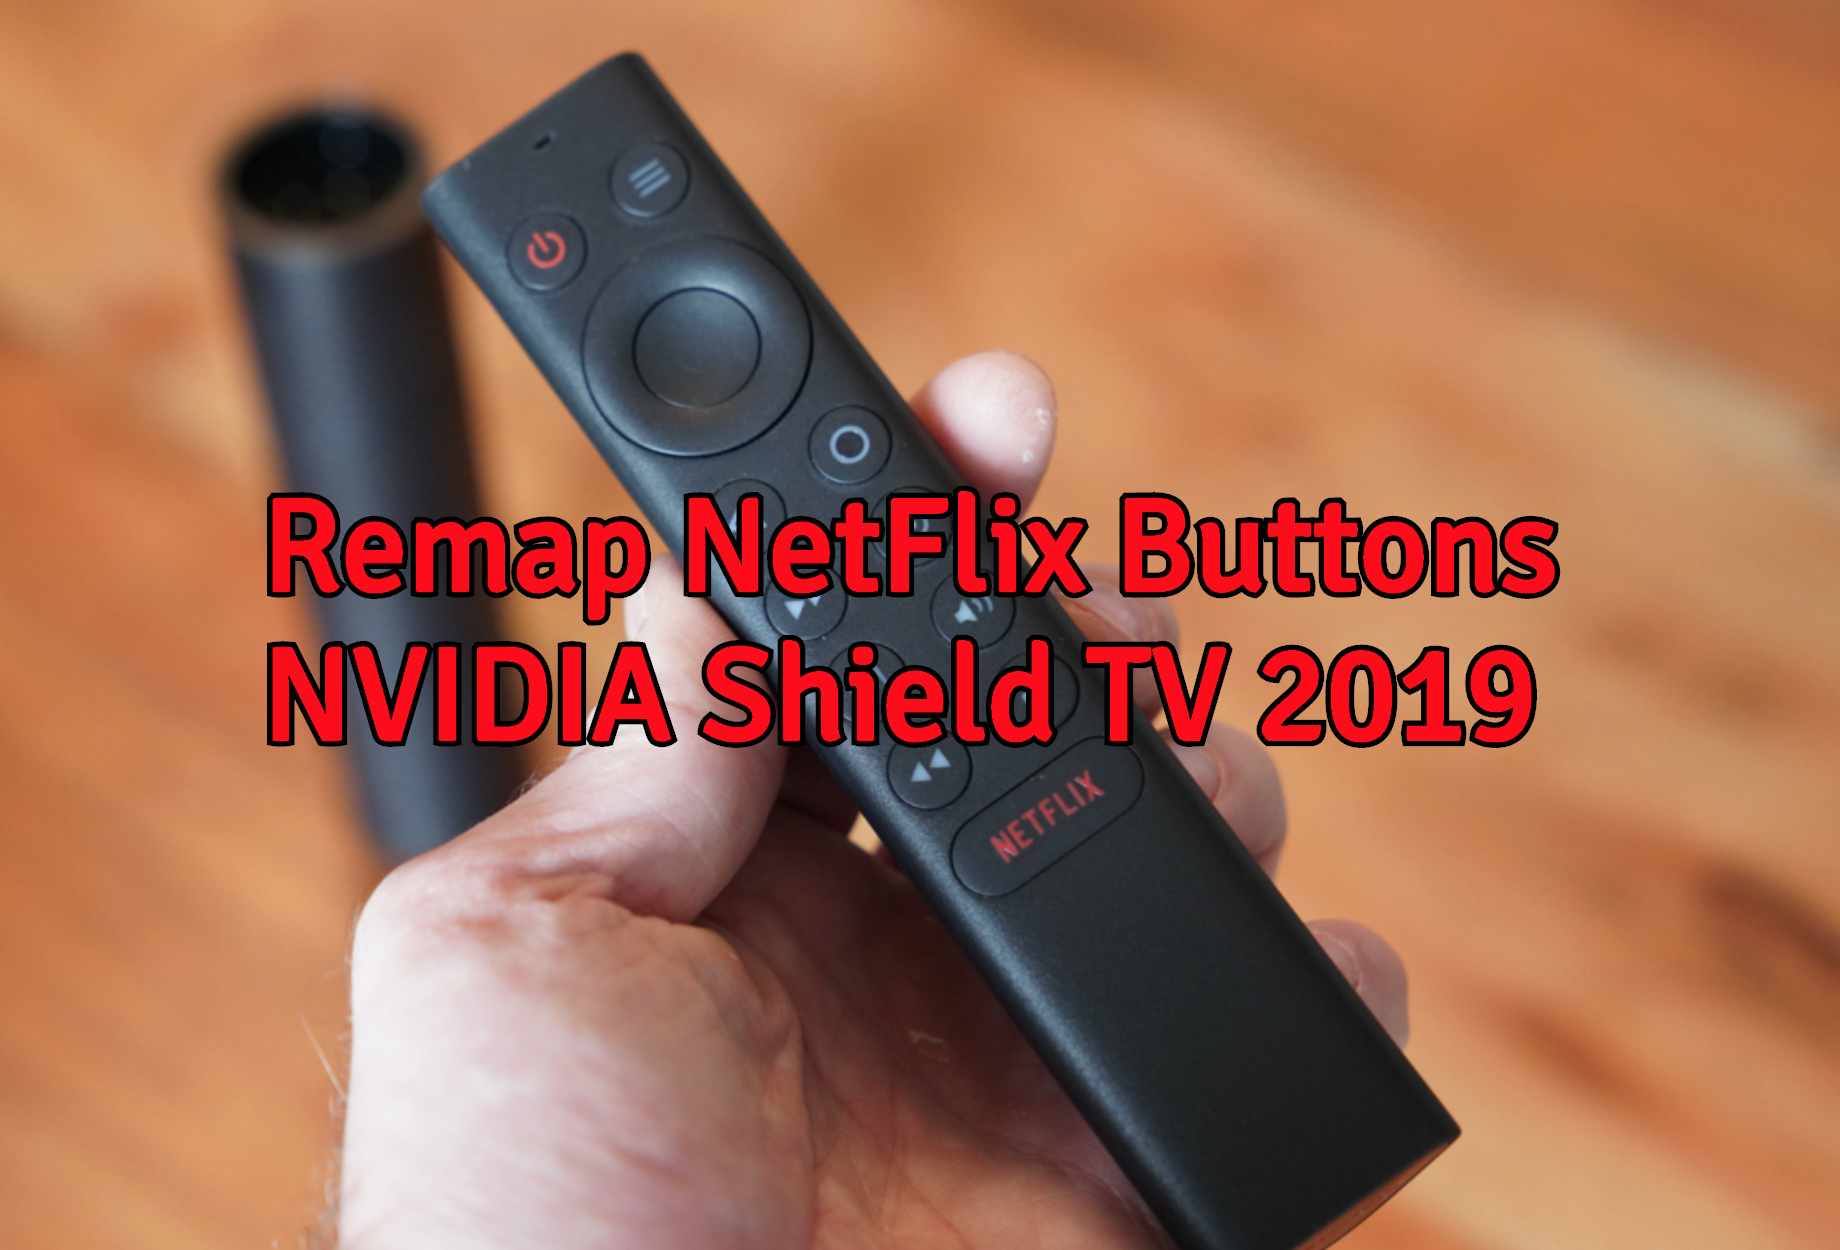 Remap Netflix Buttons on NVIDIA Shield TV